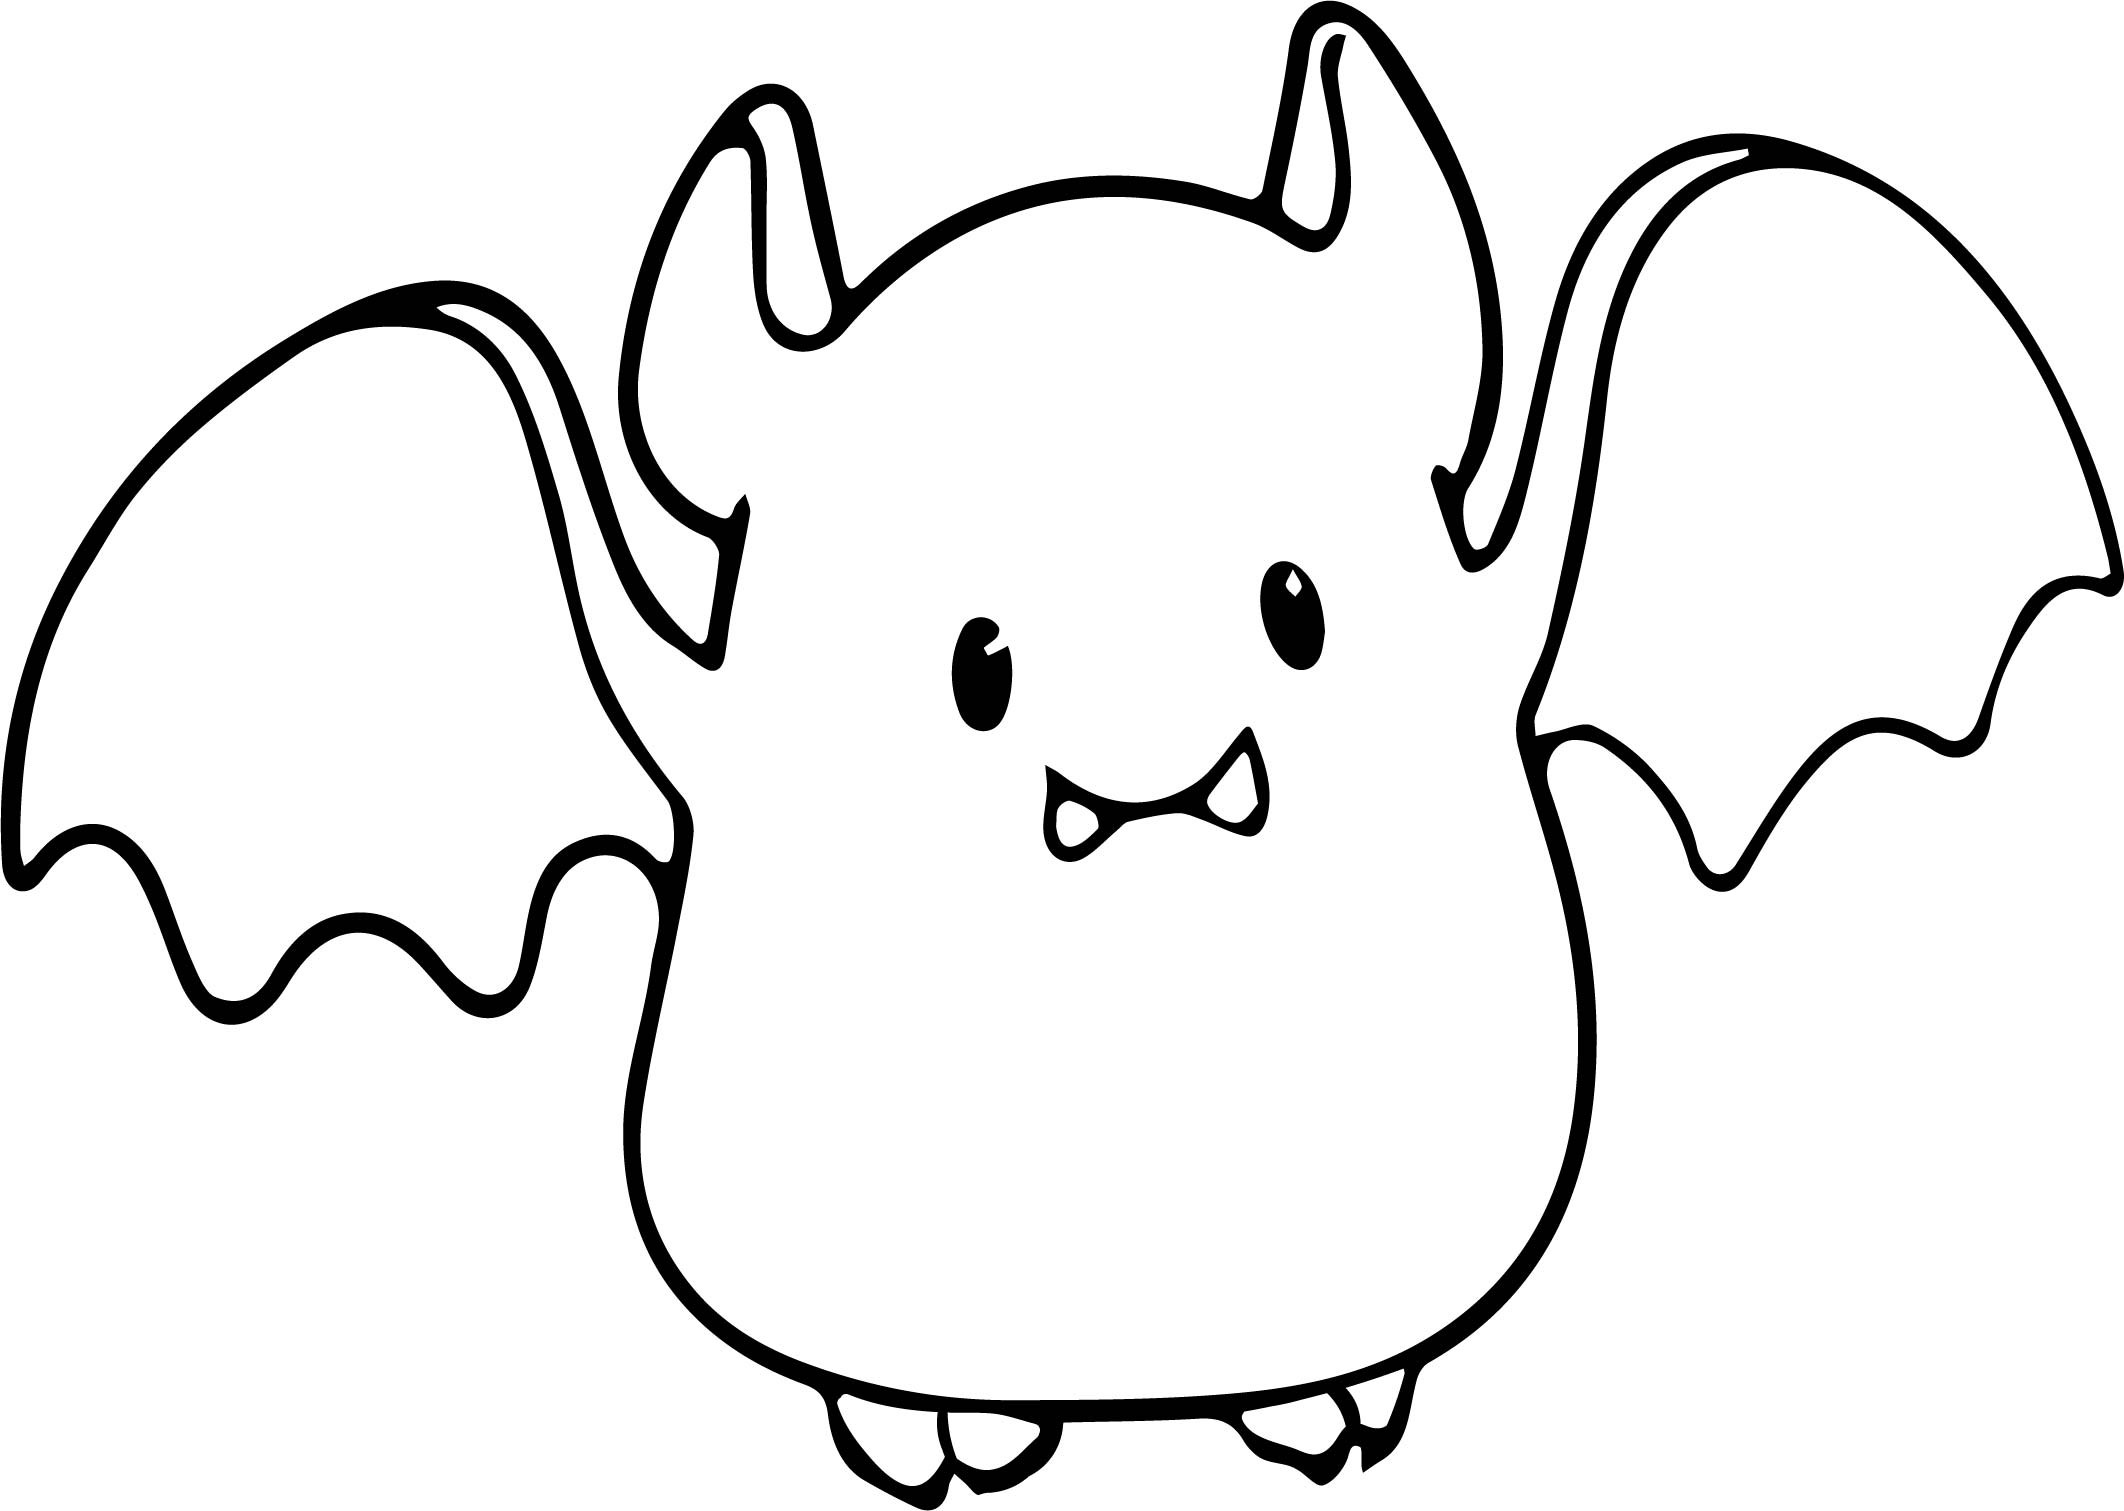 2124x1511 Coloring Page Bat Free Draw To Color